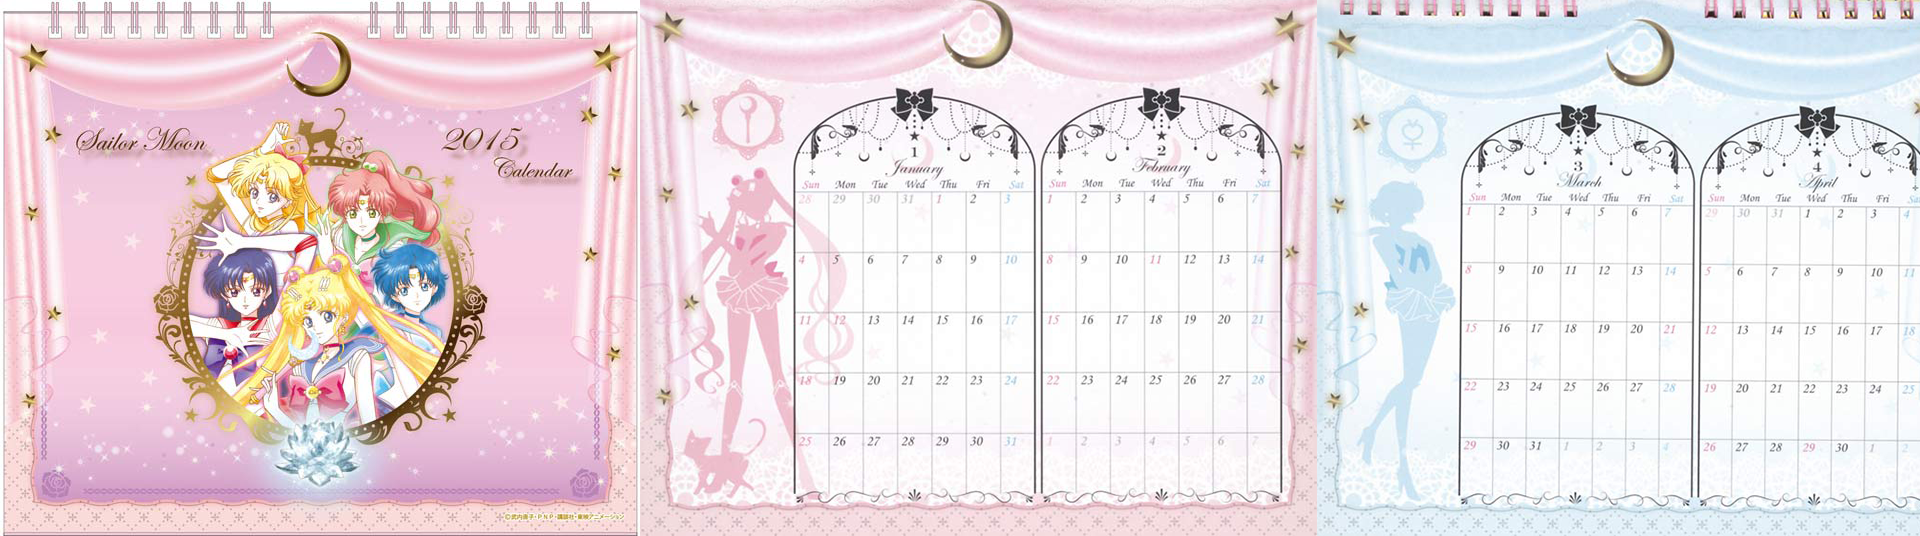 Most Wished for 2015 Anime Calendars haruhichan.com Sailor Moon Crystal calendar